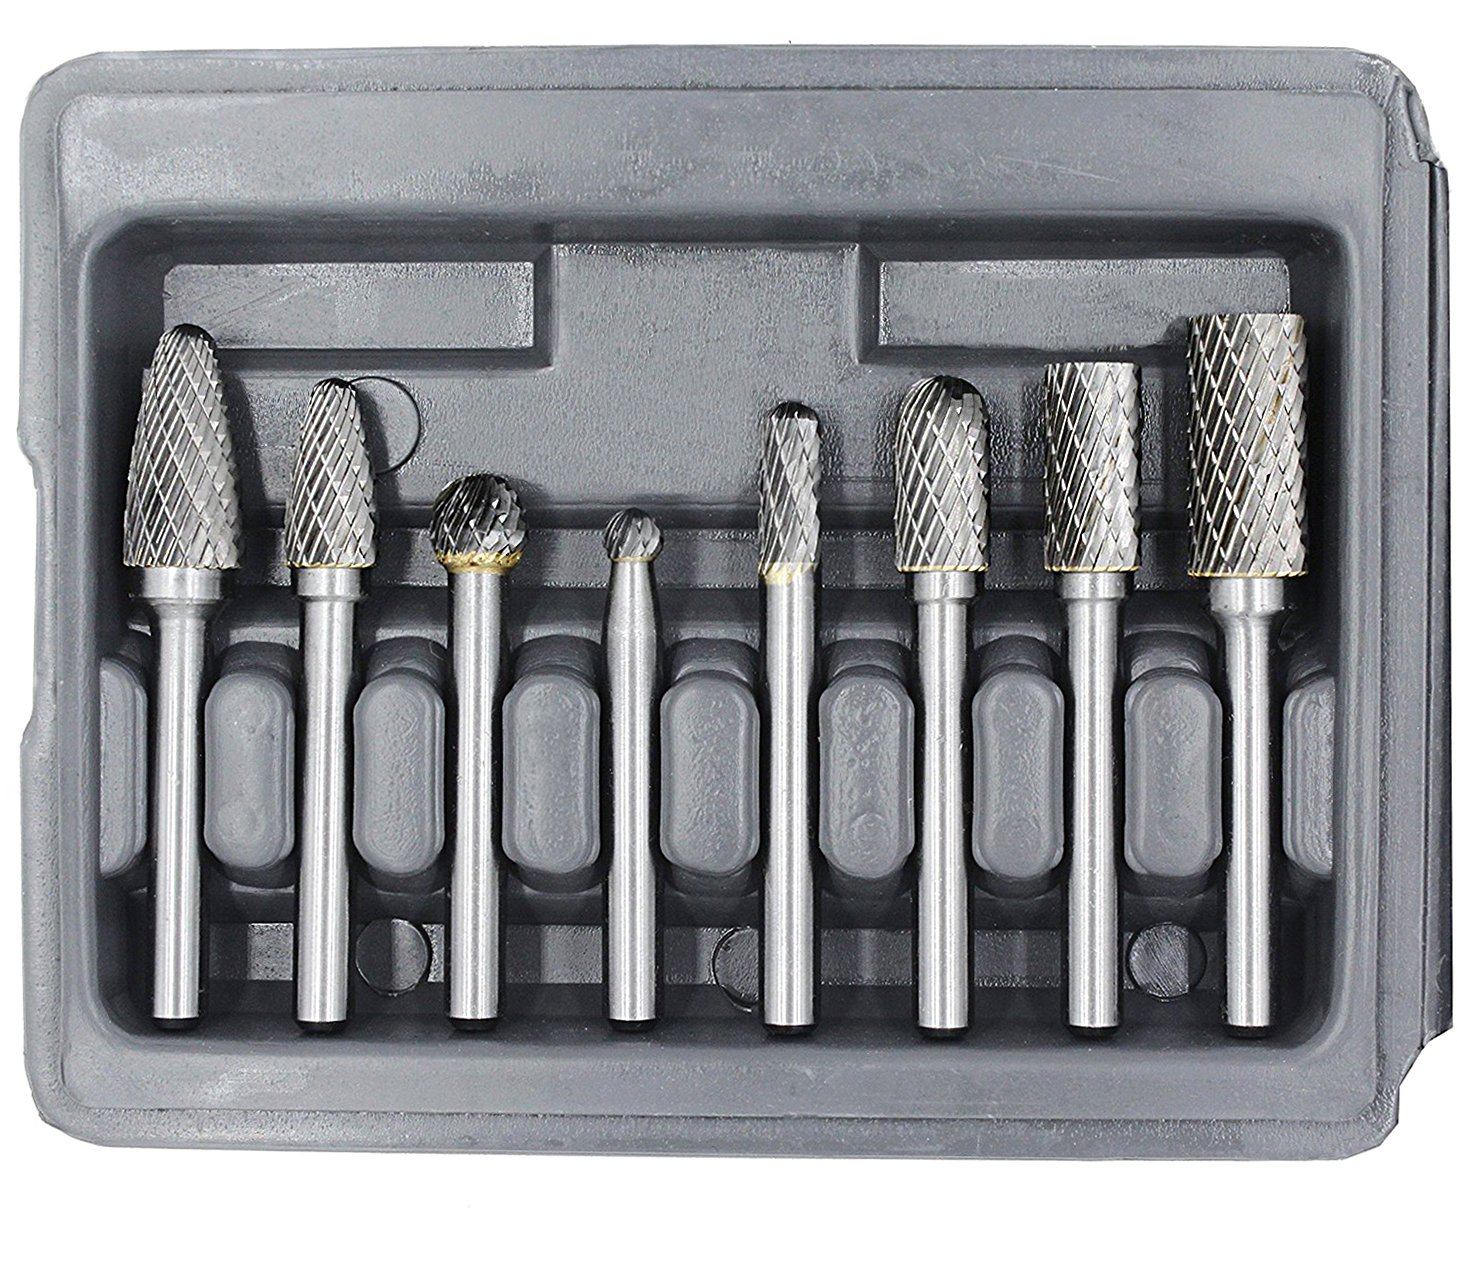 YUFUTOL Carbide Burr Set - 8pcs Double Cut Solid Carbide Rotary Burr Set 1/4''(6.35mm) Shank for Die Grinder Drill, Metal Wood Carving, Engraving,Polishing,Drilling